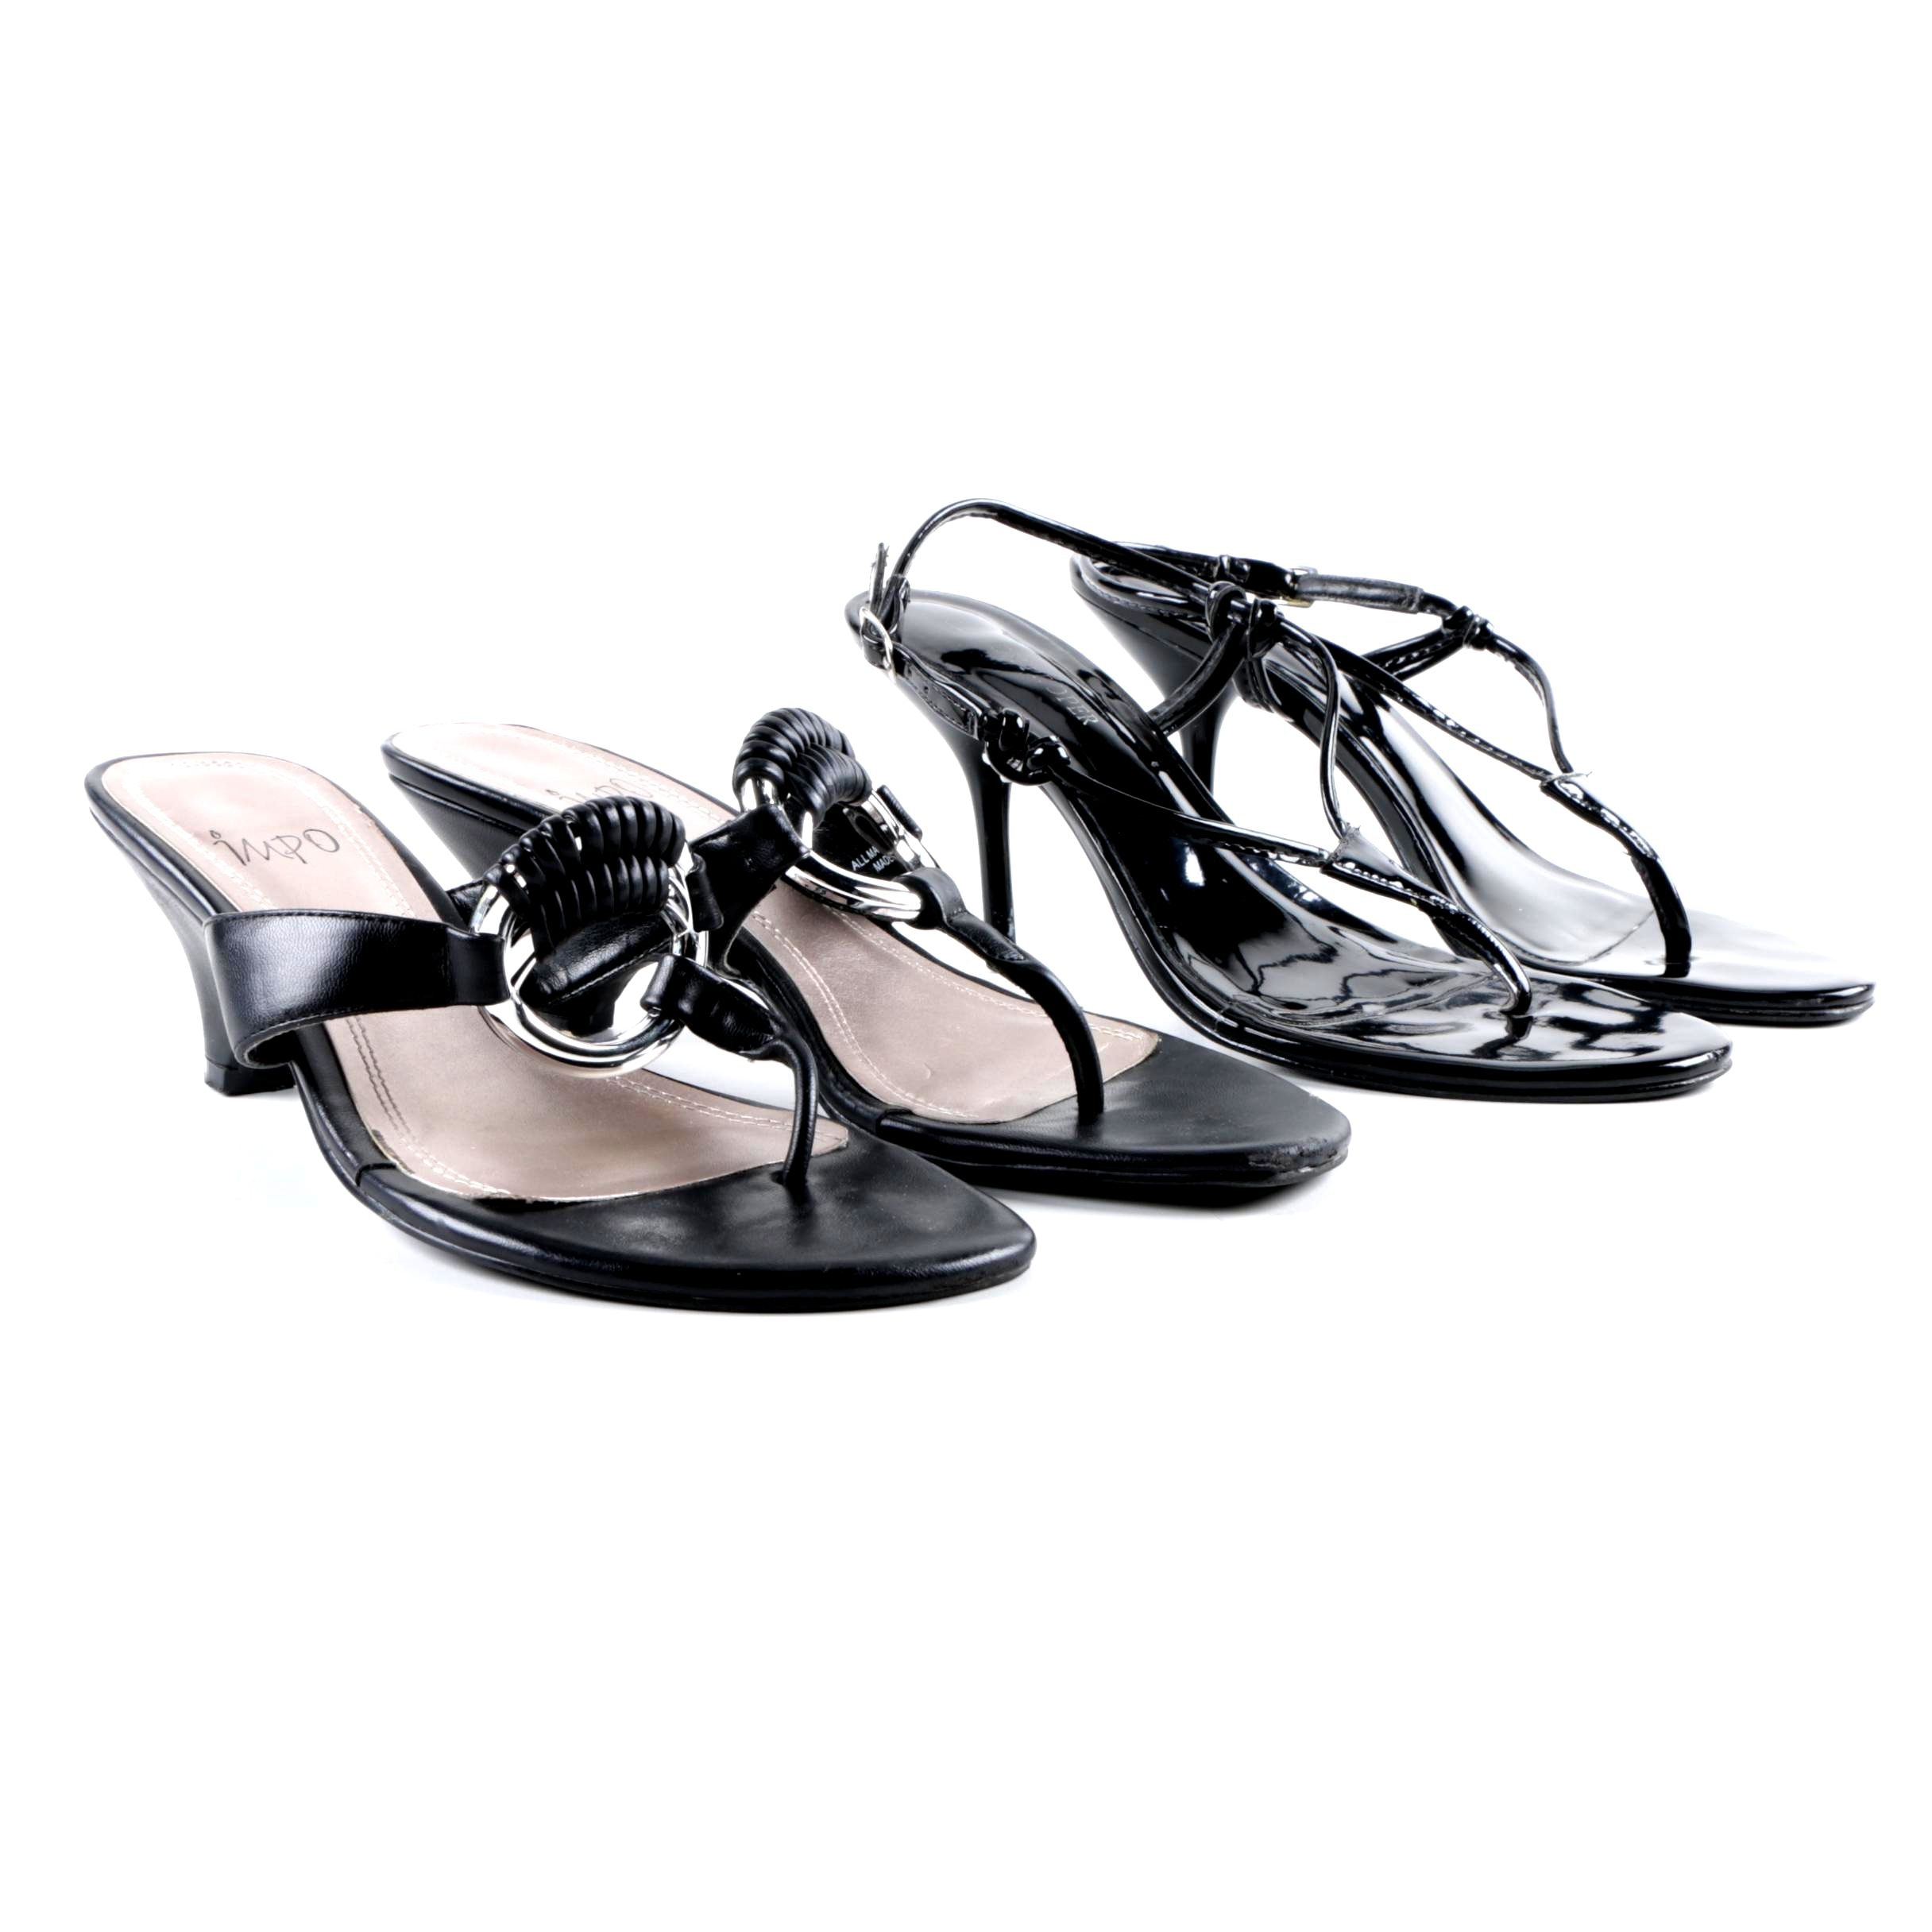 Women's Boston Proper and Impo Heeled Sandals in Black